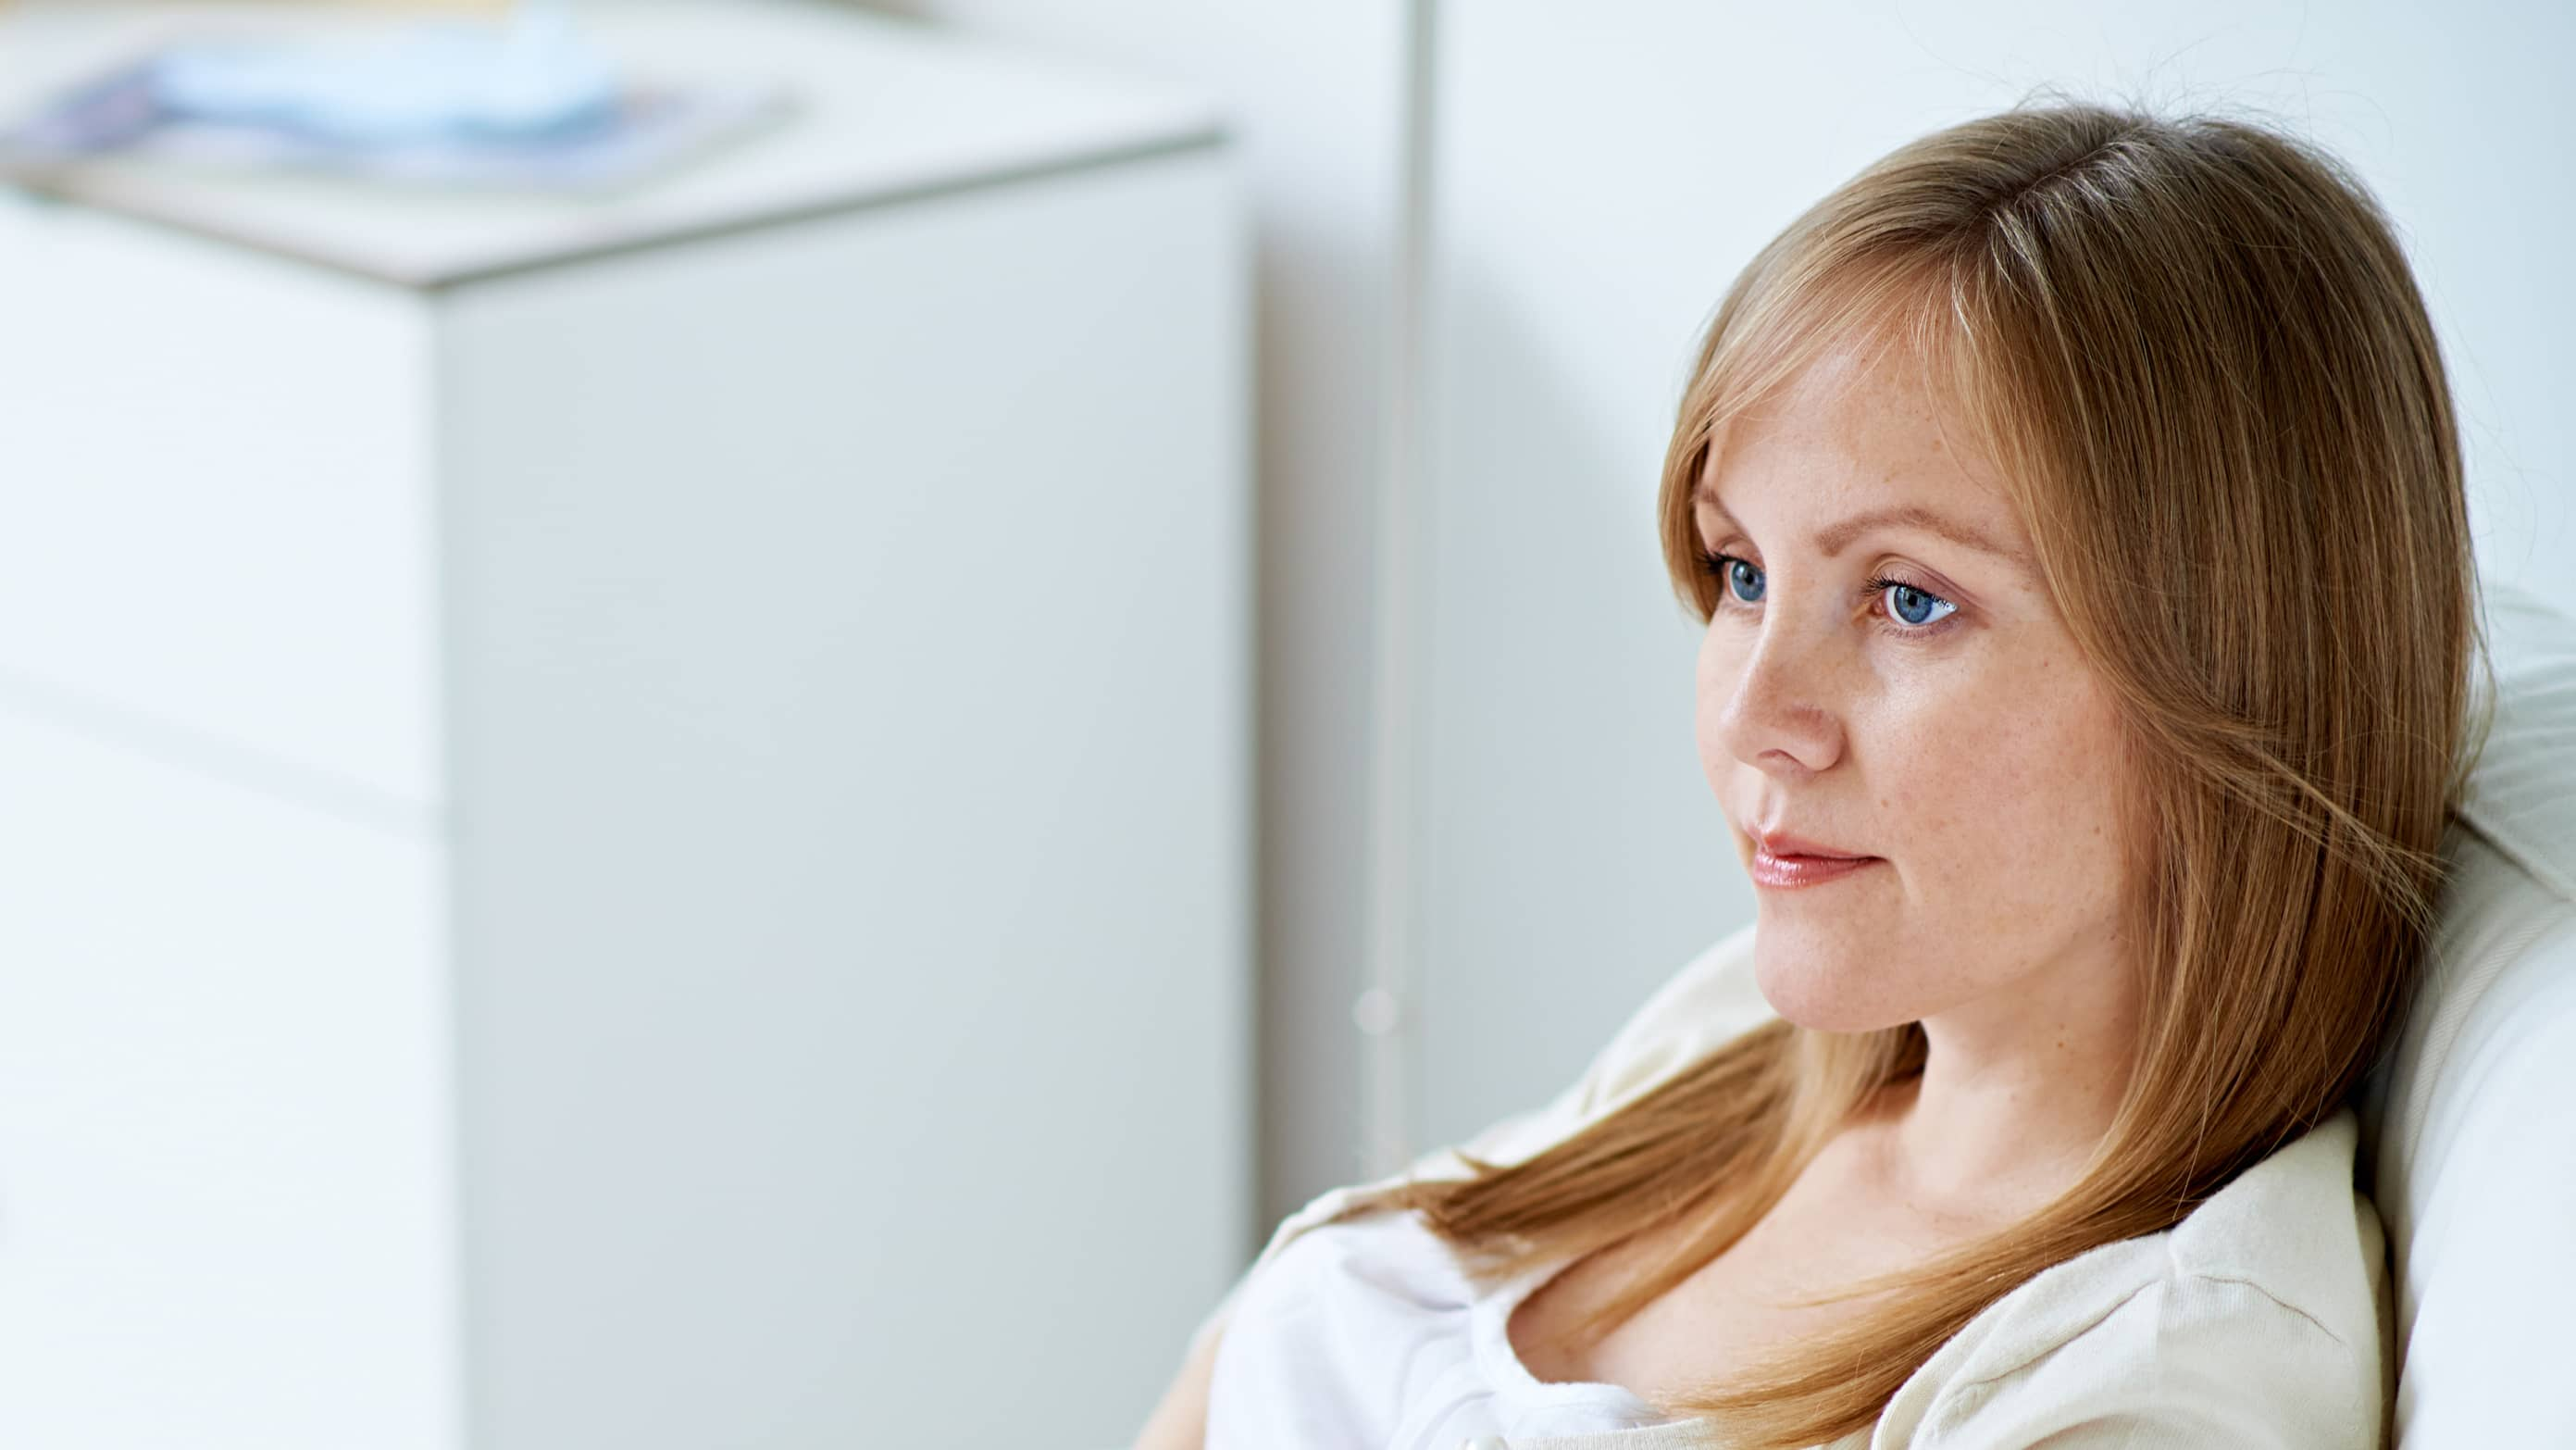 a woman looks concerned, possibly because of recurrent pregnancy loss.